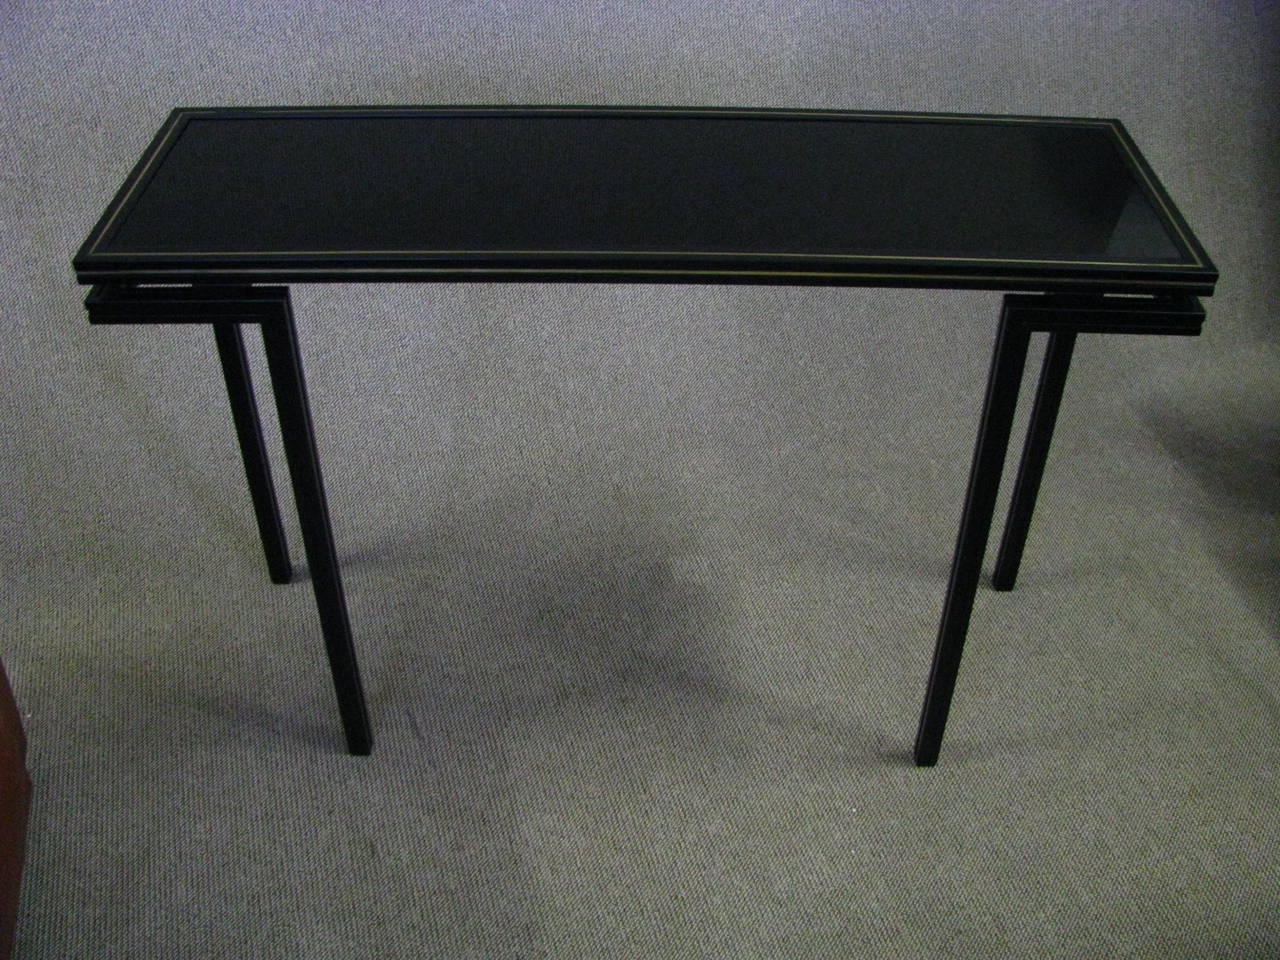 midcentury side table console by pierre vandel paris at 1stdibs. Black Bedroom Furniture Sets. Home Design Ideas